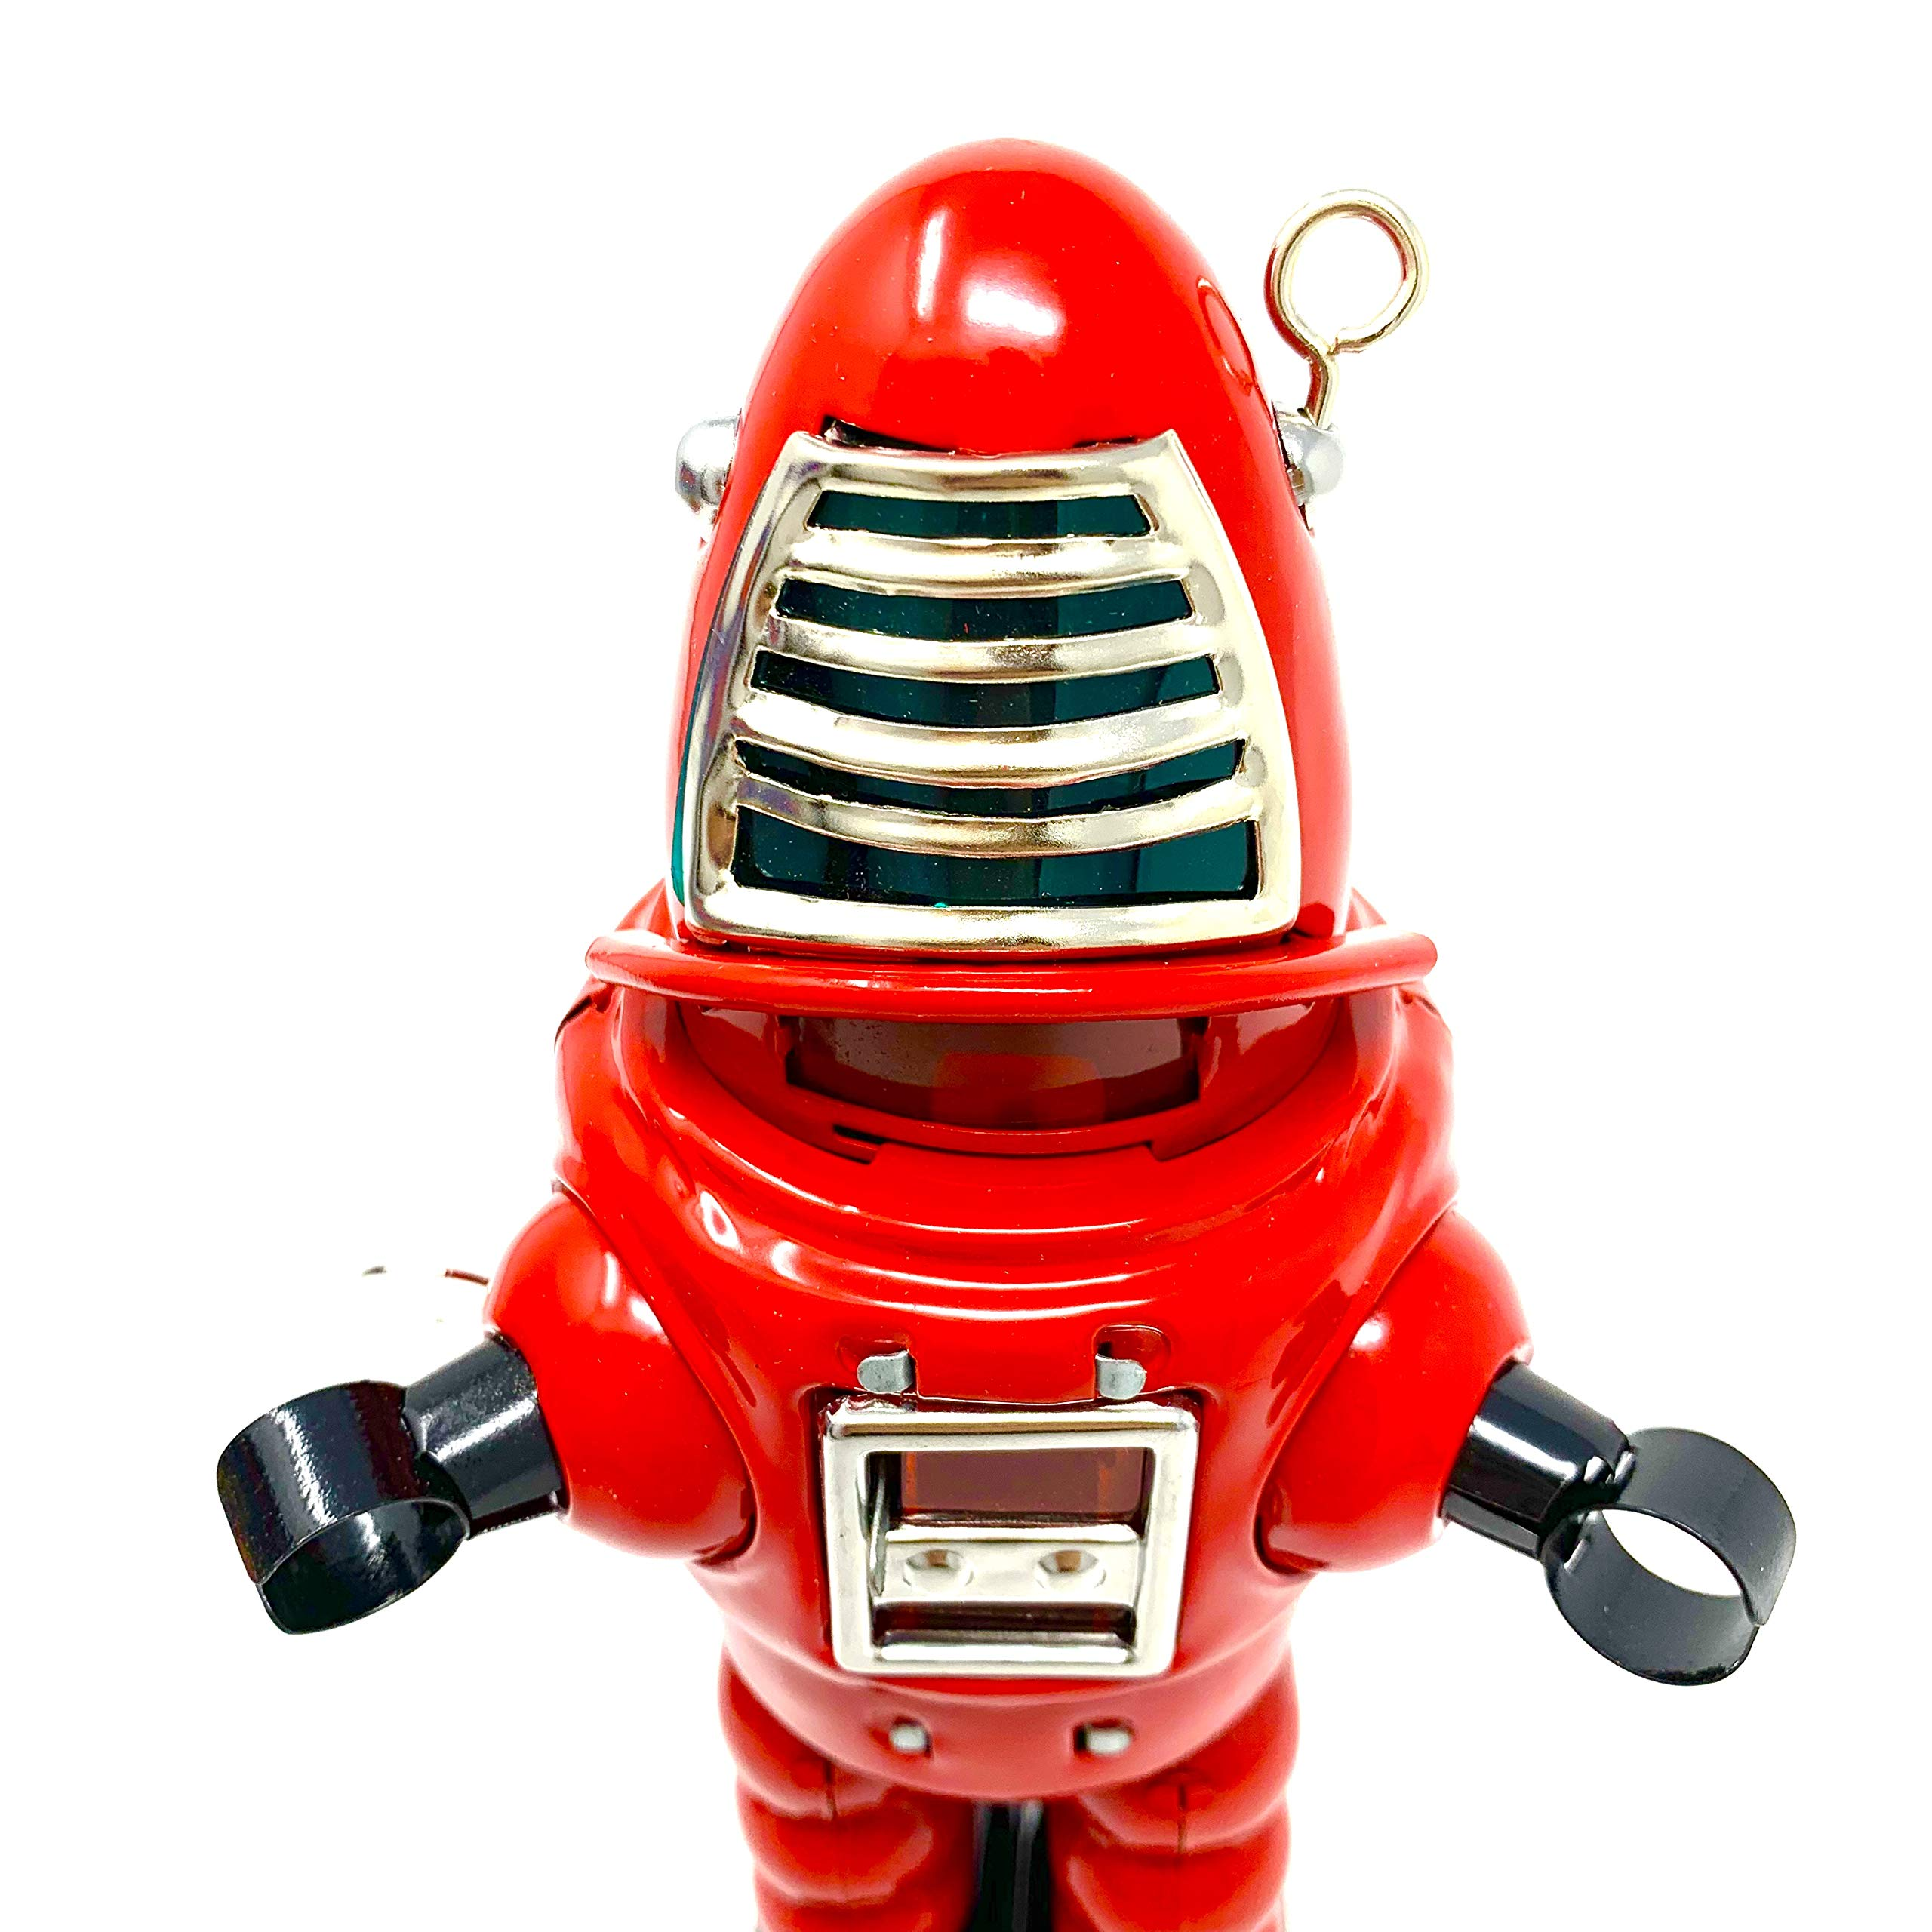 Off the Wall Toys Vintage Style Collectible Wind Up Red Planet Robot Wind Up 8.5'' MS430 by Off the Wall Toys (Image #6)